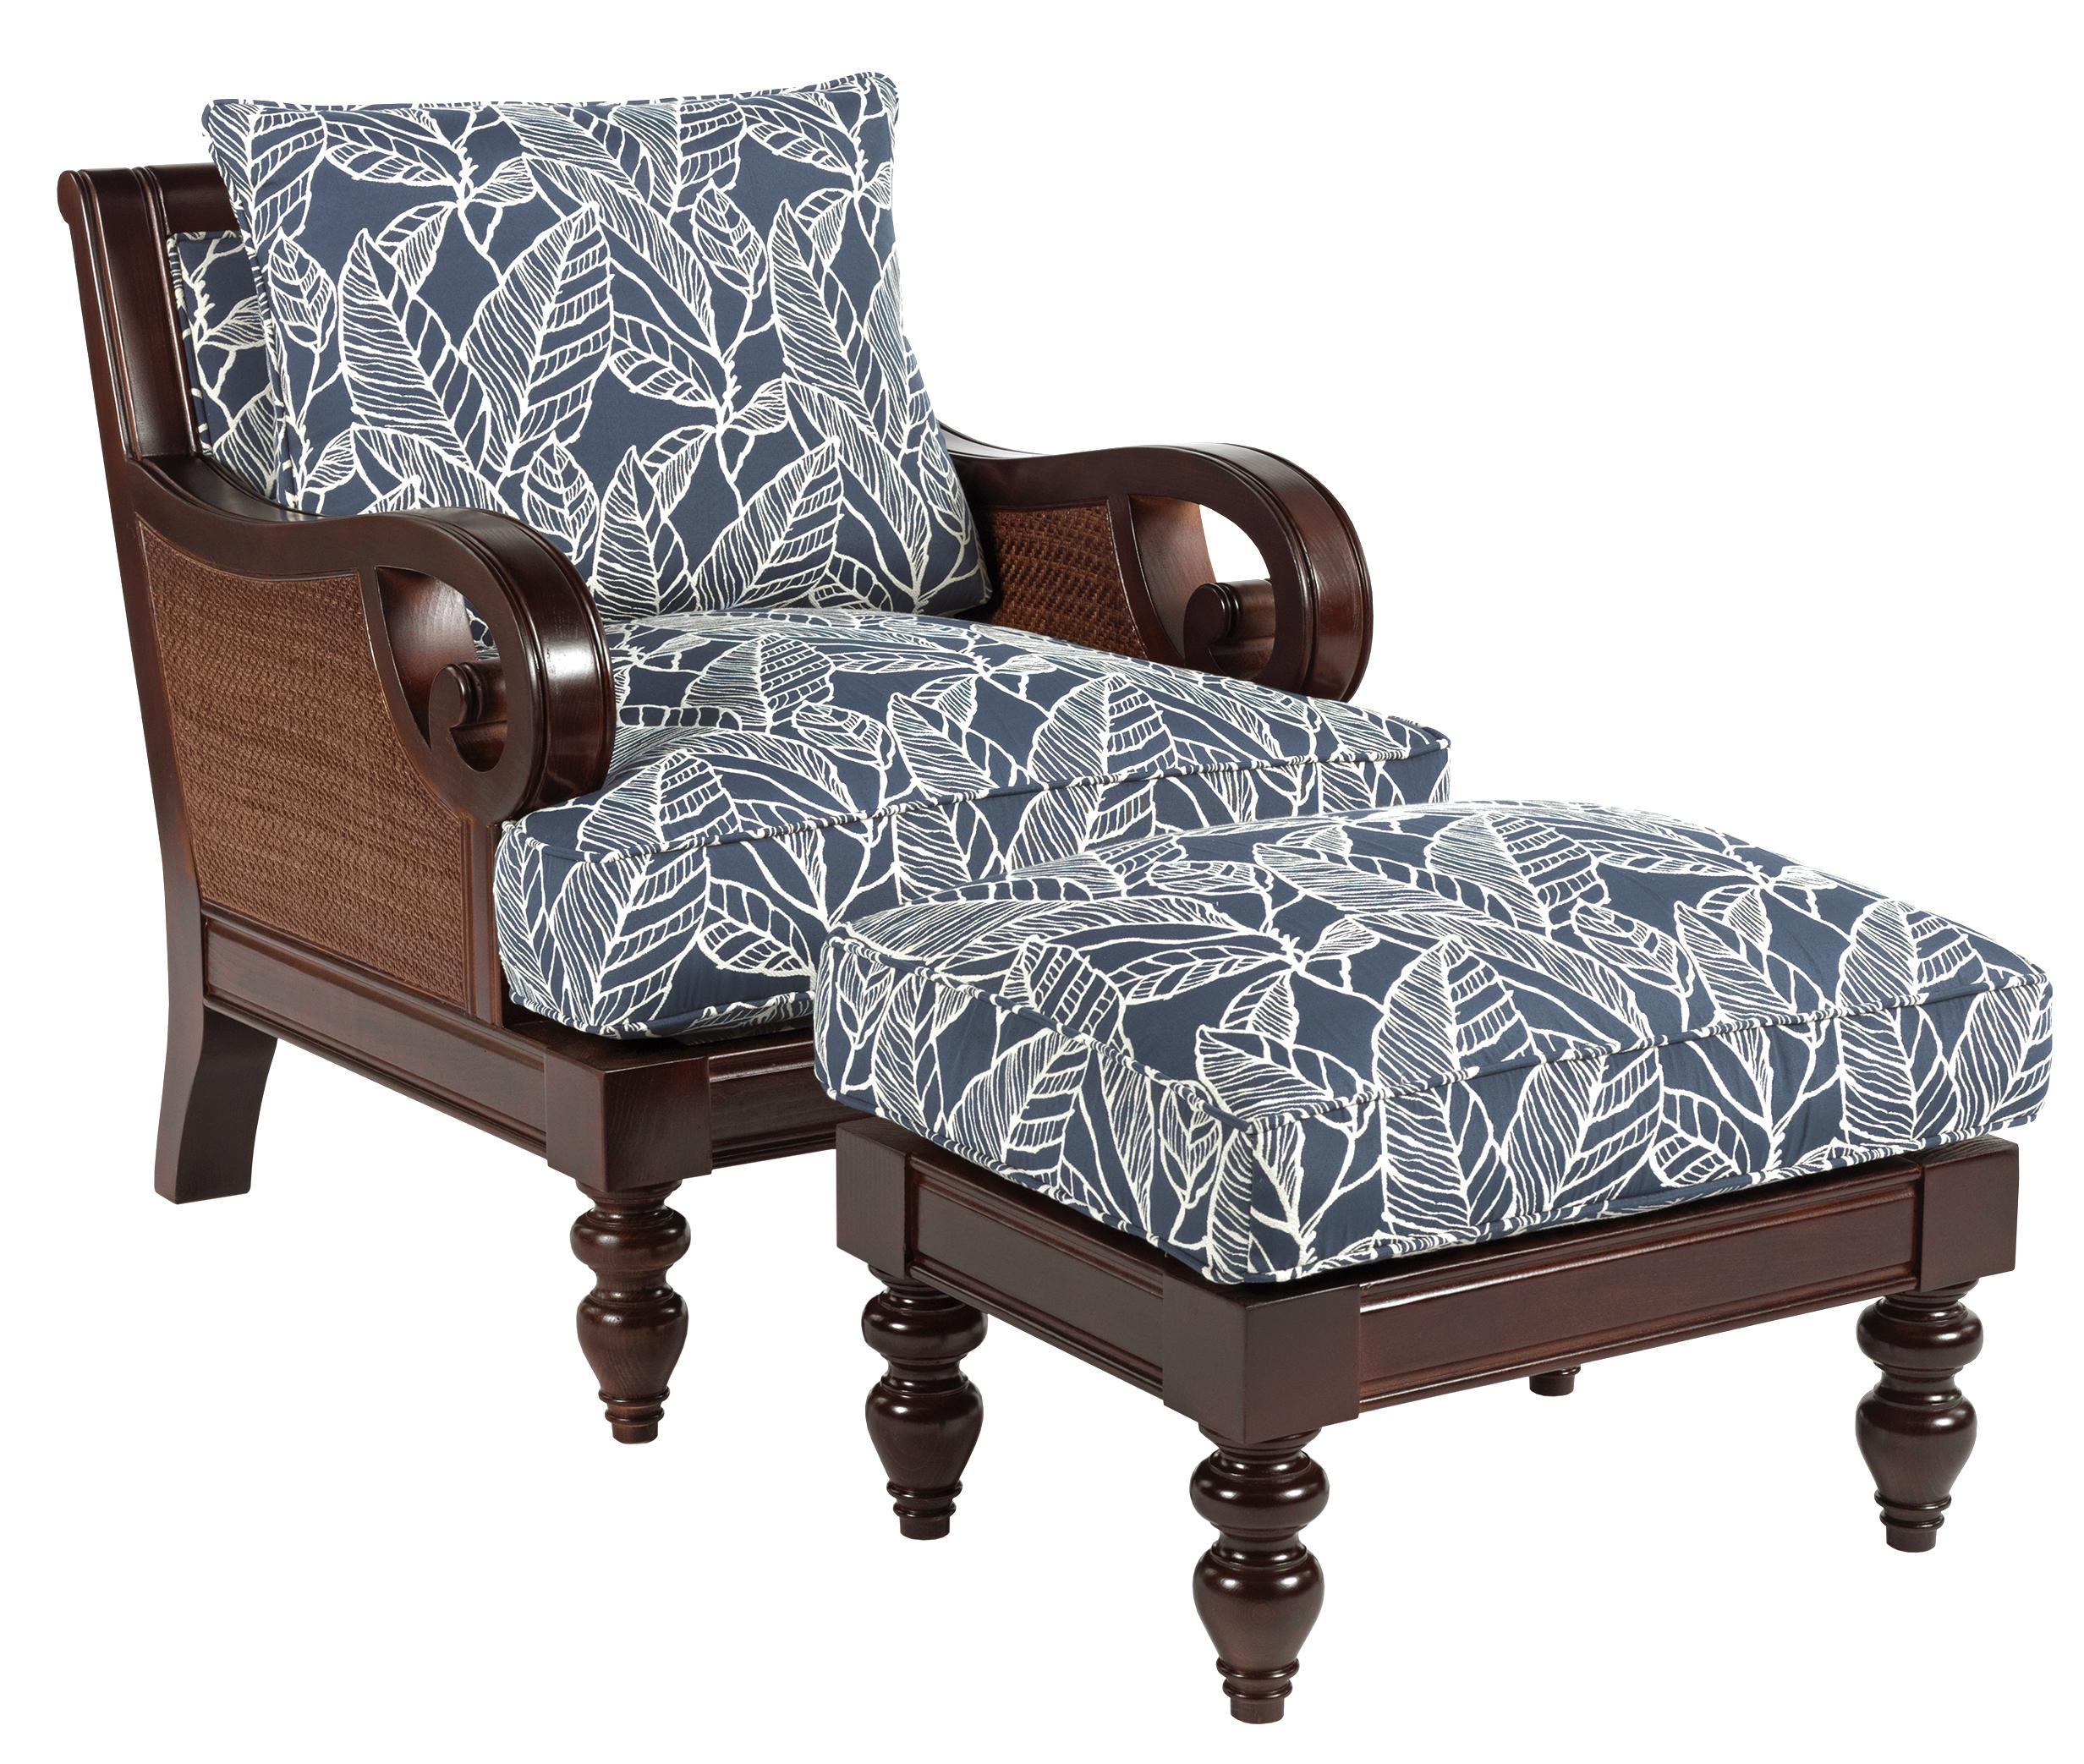 Gentil Tailynn Tropical Exposed Wood Chair And Ottoman Set By Sam Moore